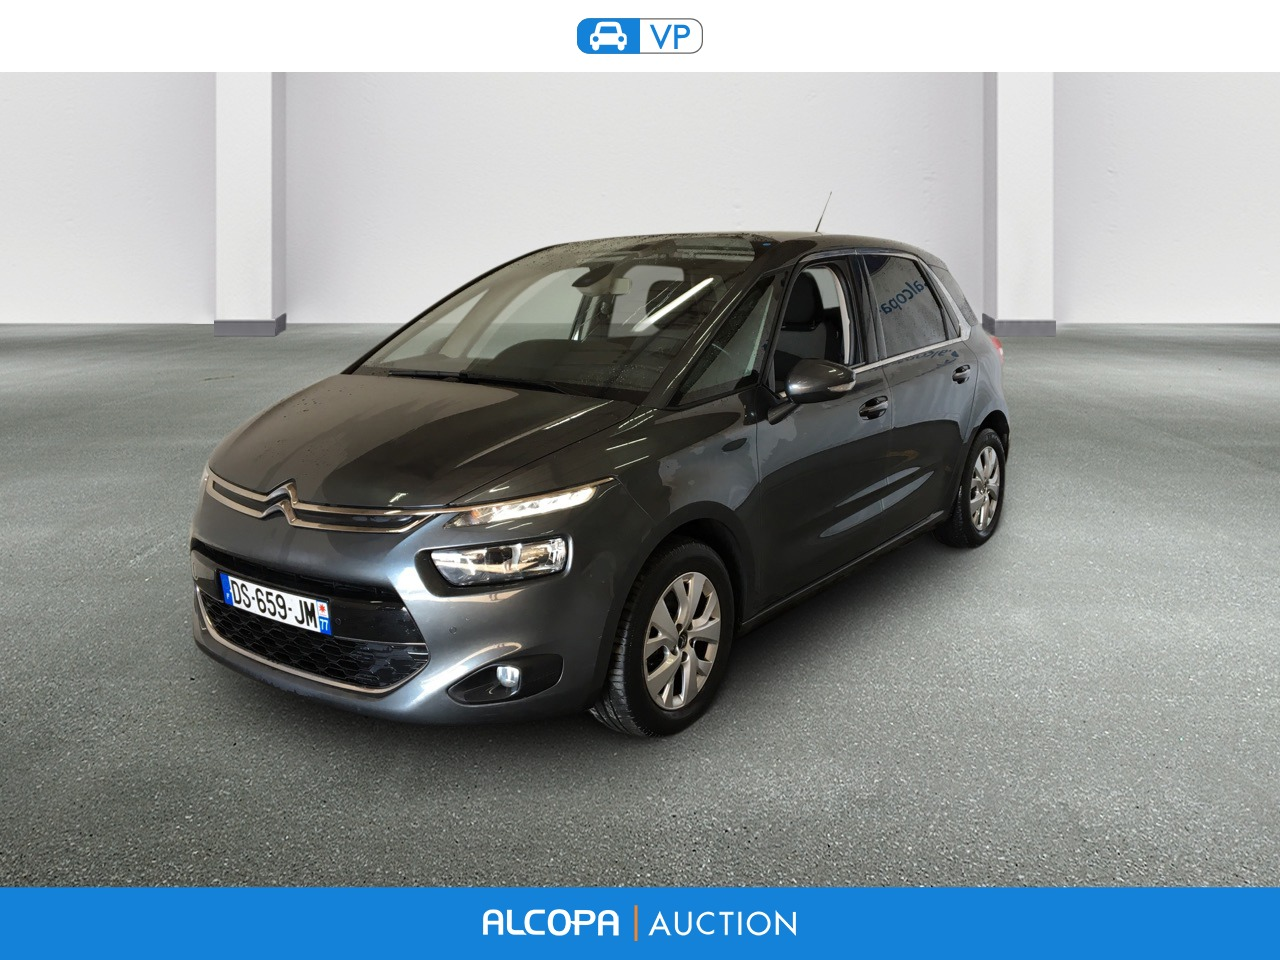 citroen c4 picasso 04 2013 06 2016 c4 picasso e hdi 115 intensive etg6 alcopa auction. Black Bedroom Furniture Sets. Home Design Ideas